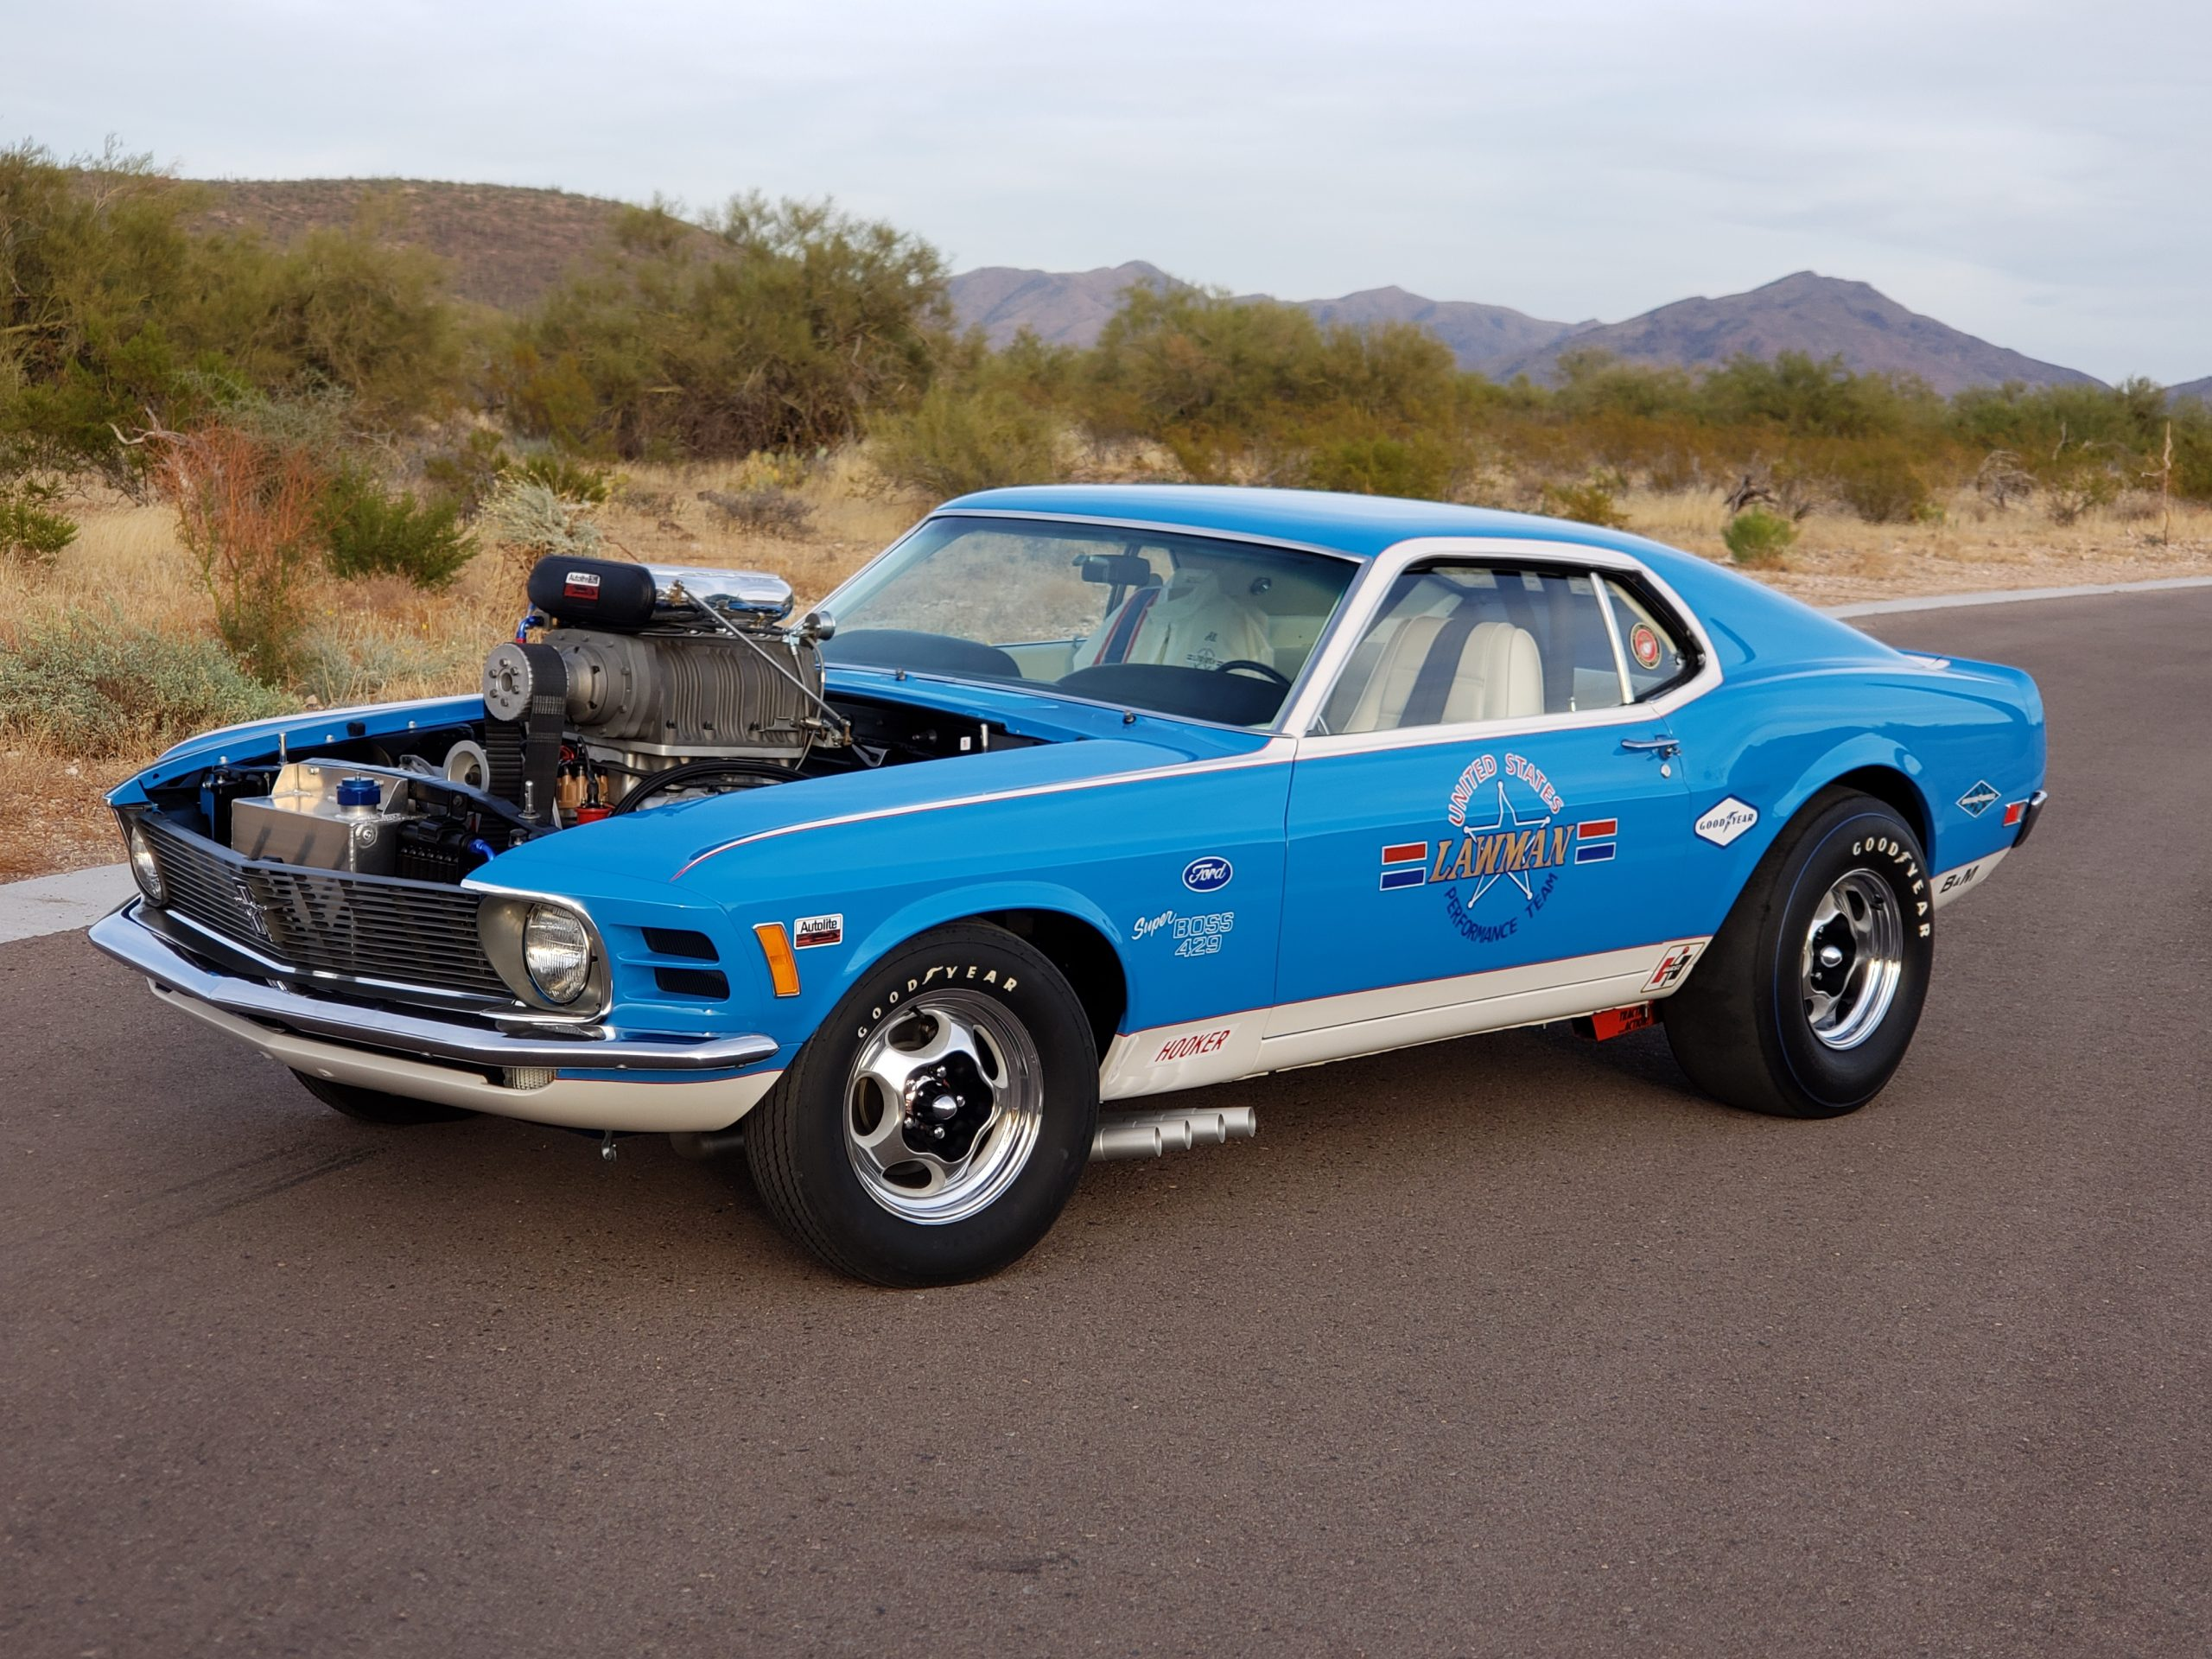 Lawman Boss 429 Ford Mustang front three-quarter